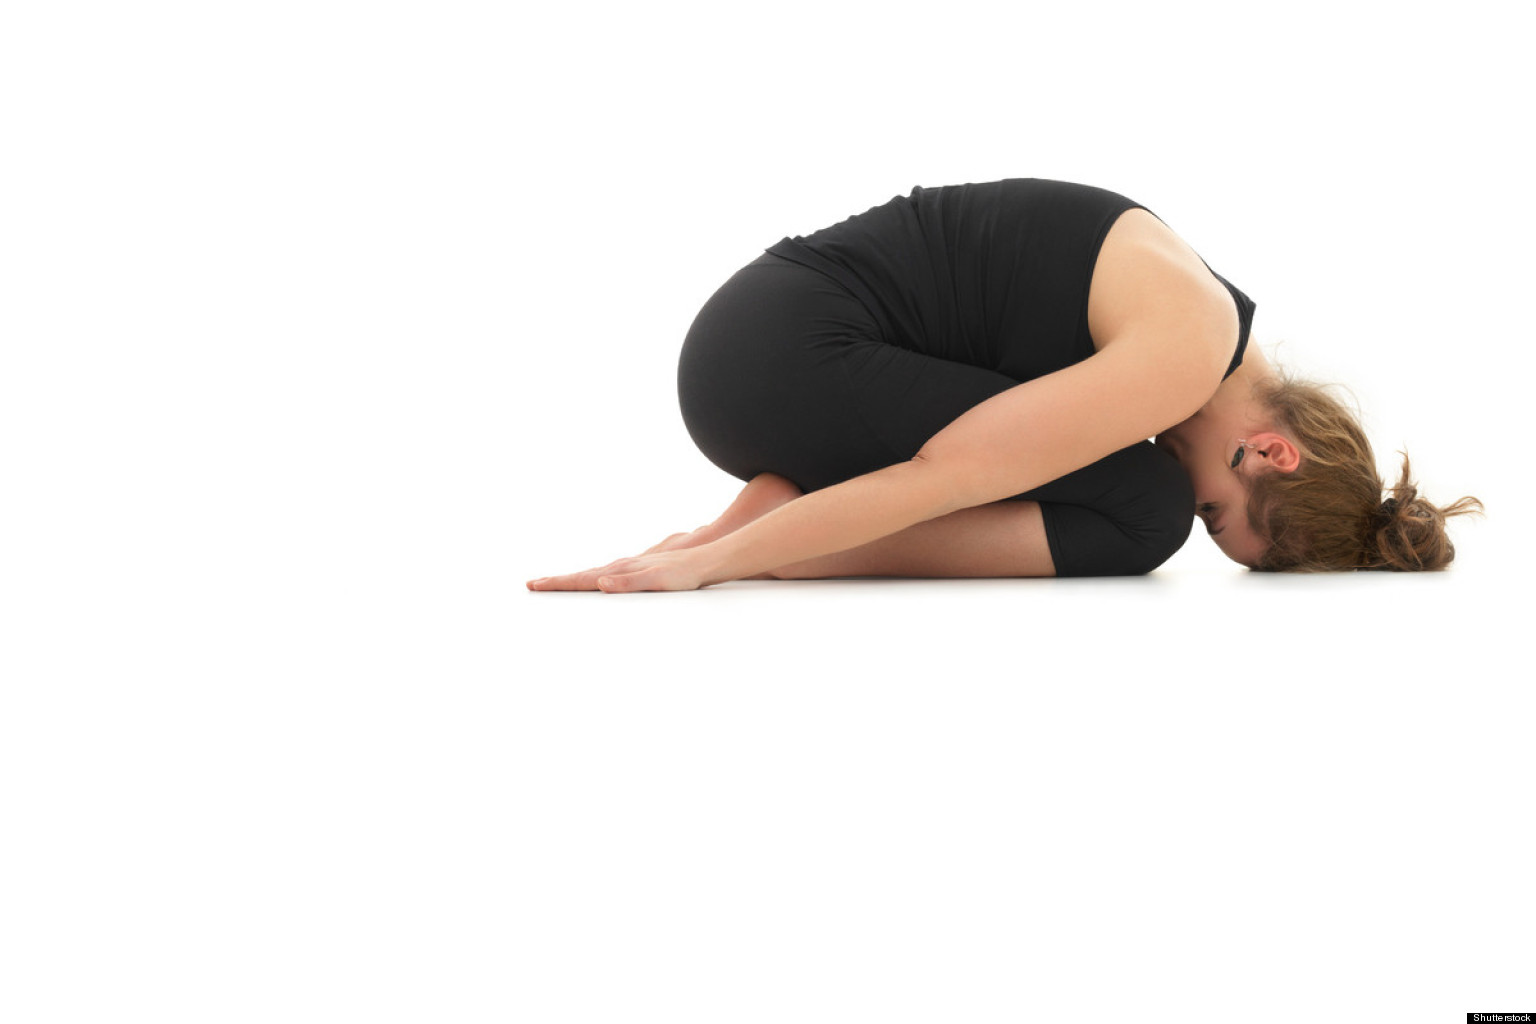 Yoga For Anxiety 10 Poses To Reduce Stress And Support Mental Health PHOTOS